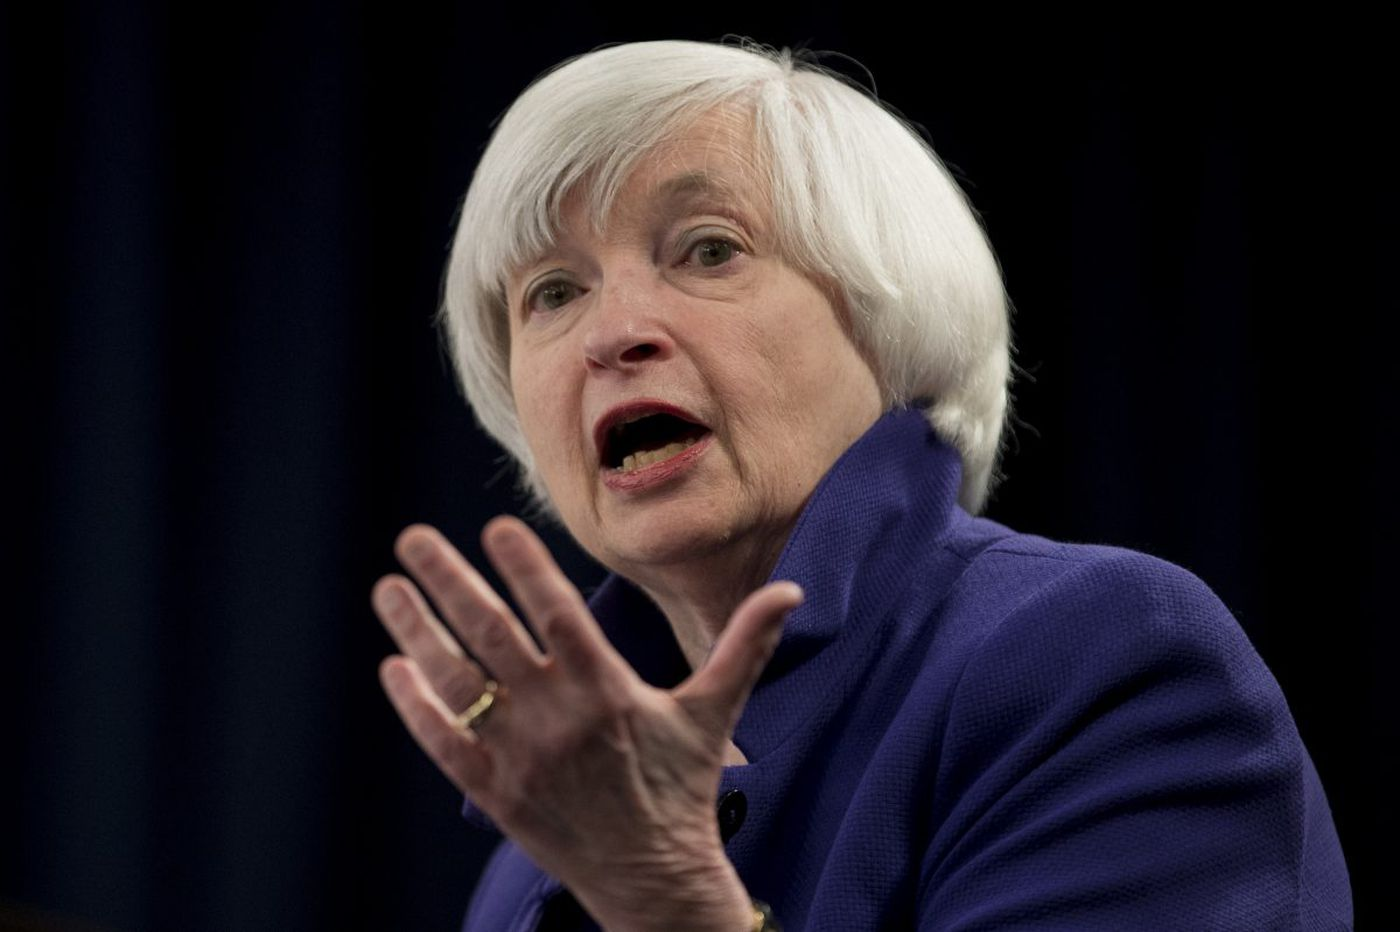 The Fed's model says to raise rates. But what if the model is obsolete? | Opinion